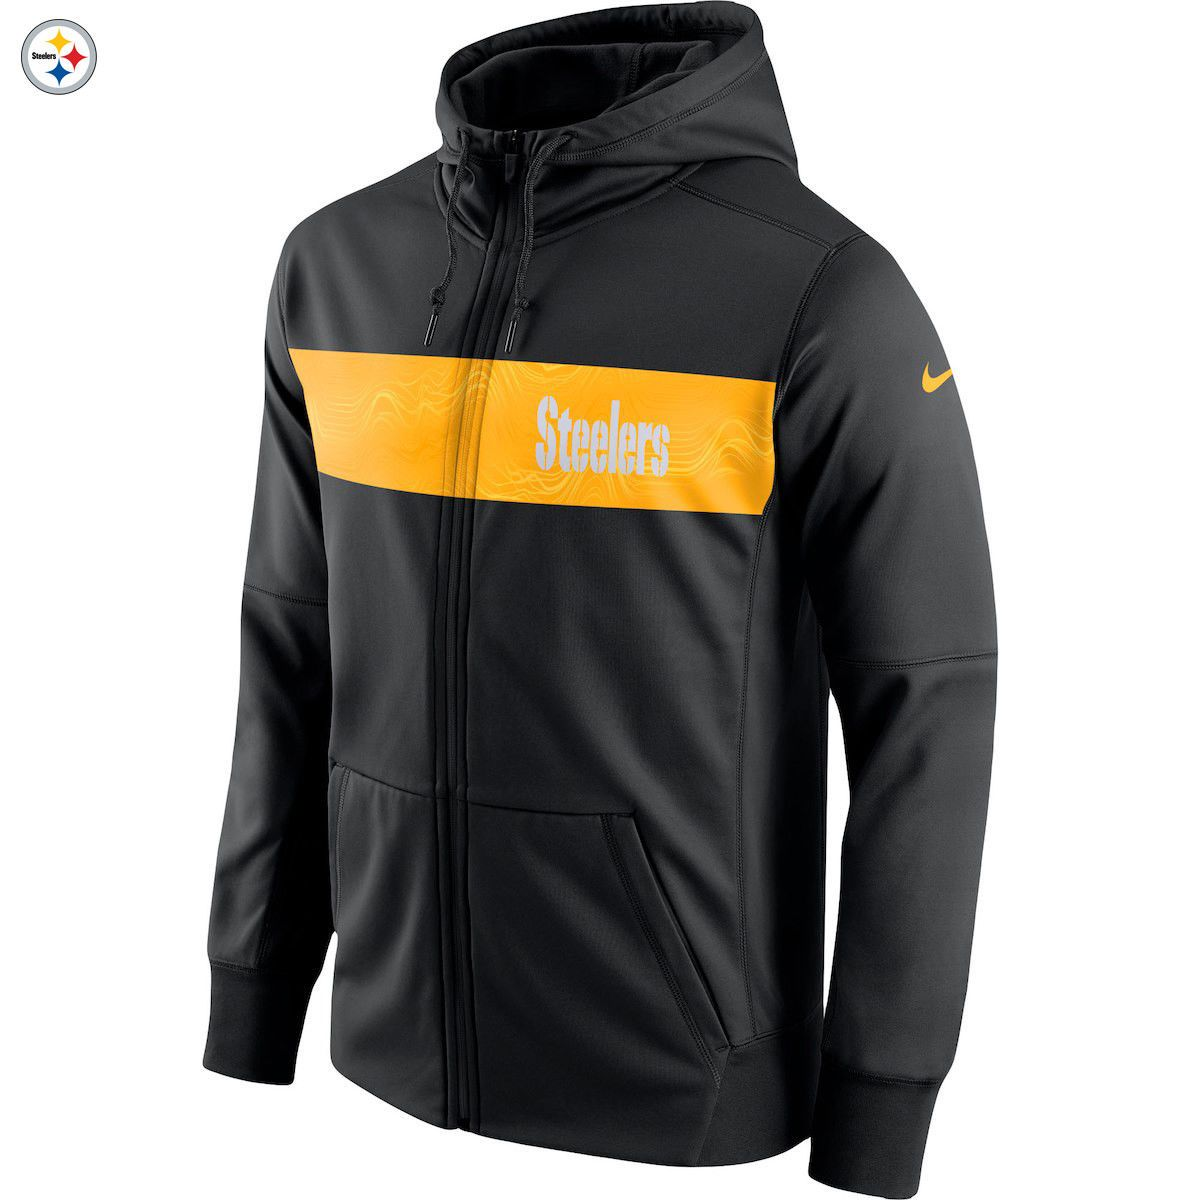 separation shoes 5a496 a8947 Details about Pittsburgh Steelers Nike Team Sideline Full ...